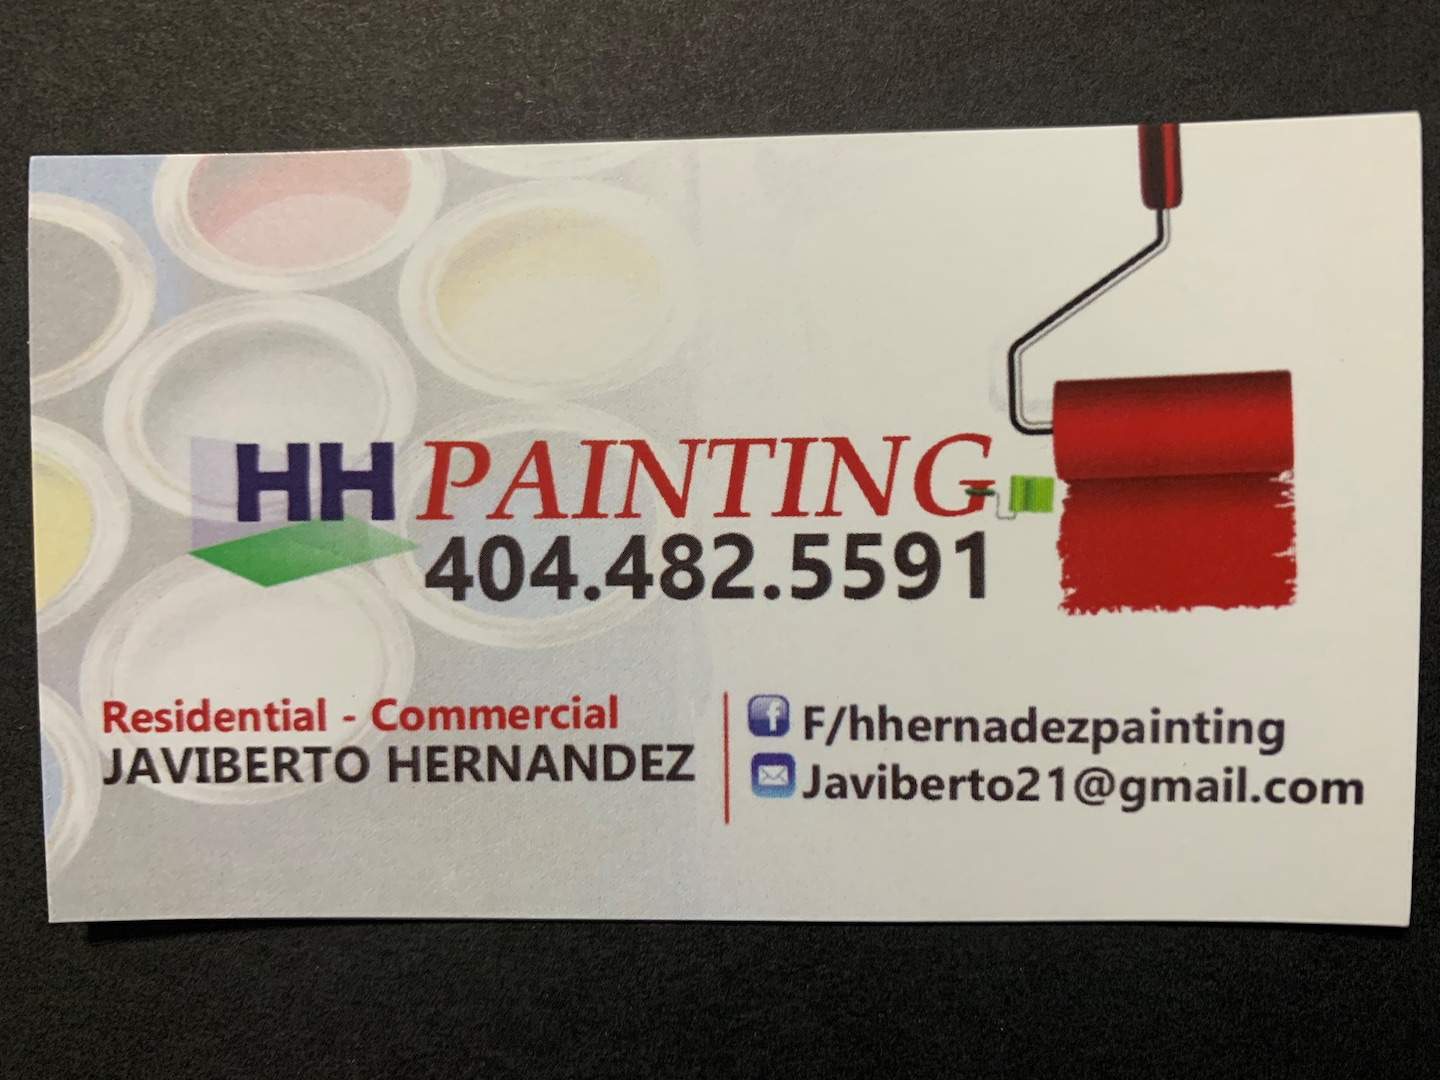 HH Painting